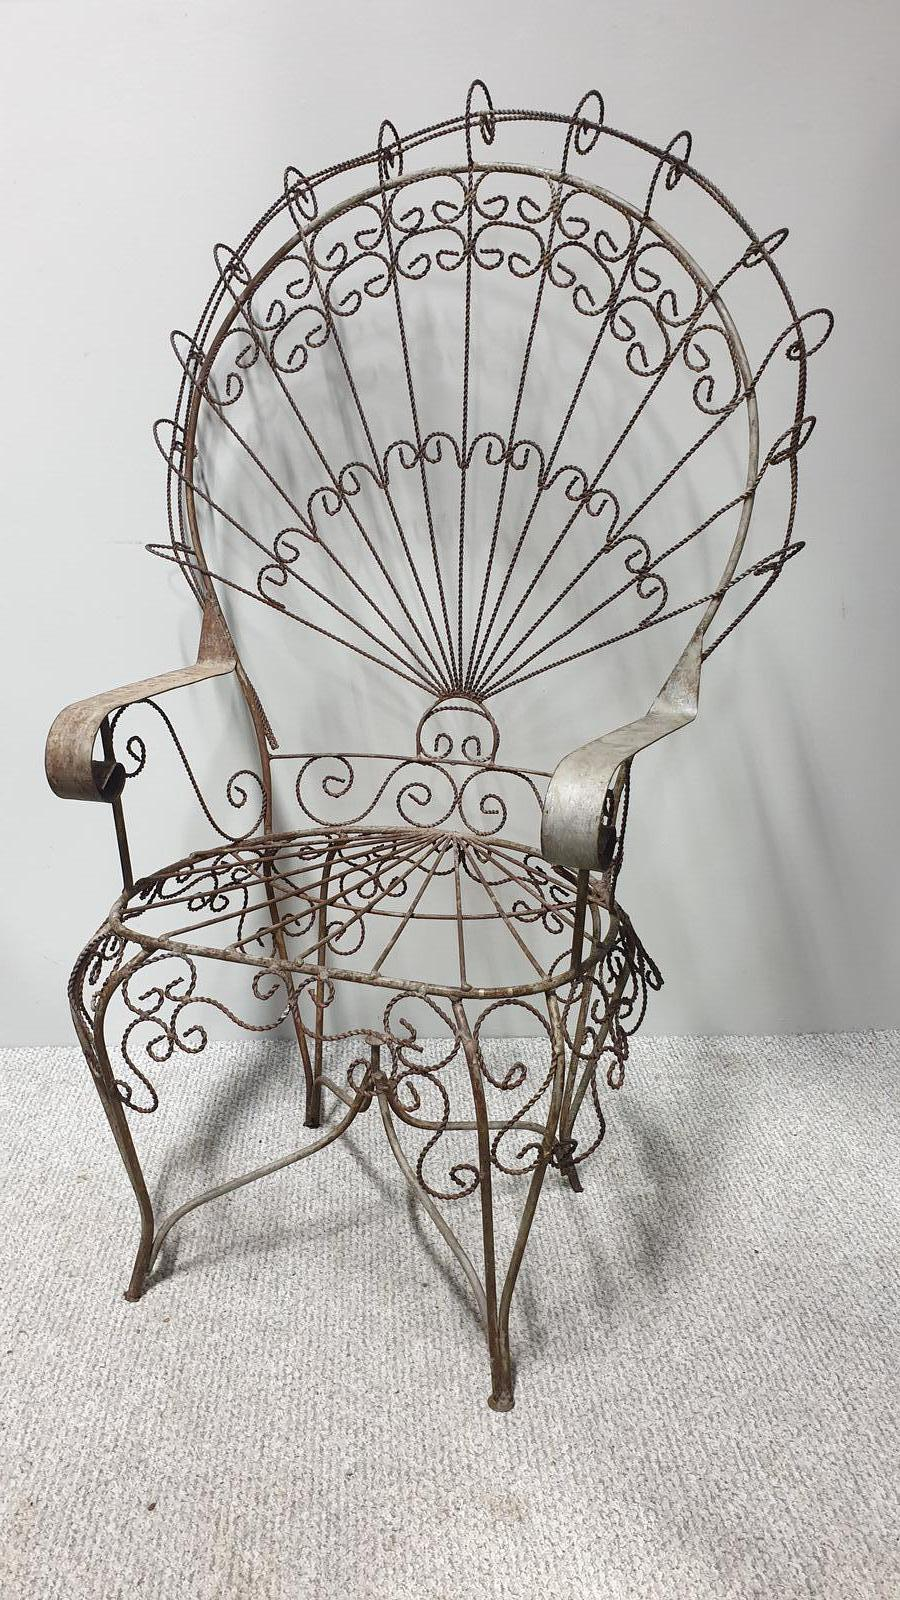 Superb Wrought Iron Peacock Chair by 'salterini' (1 of 1)